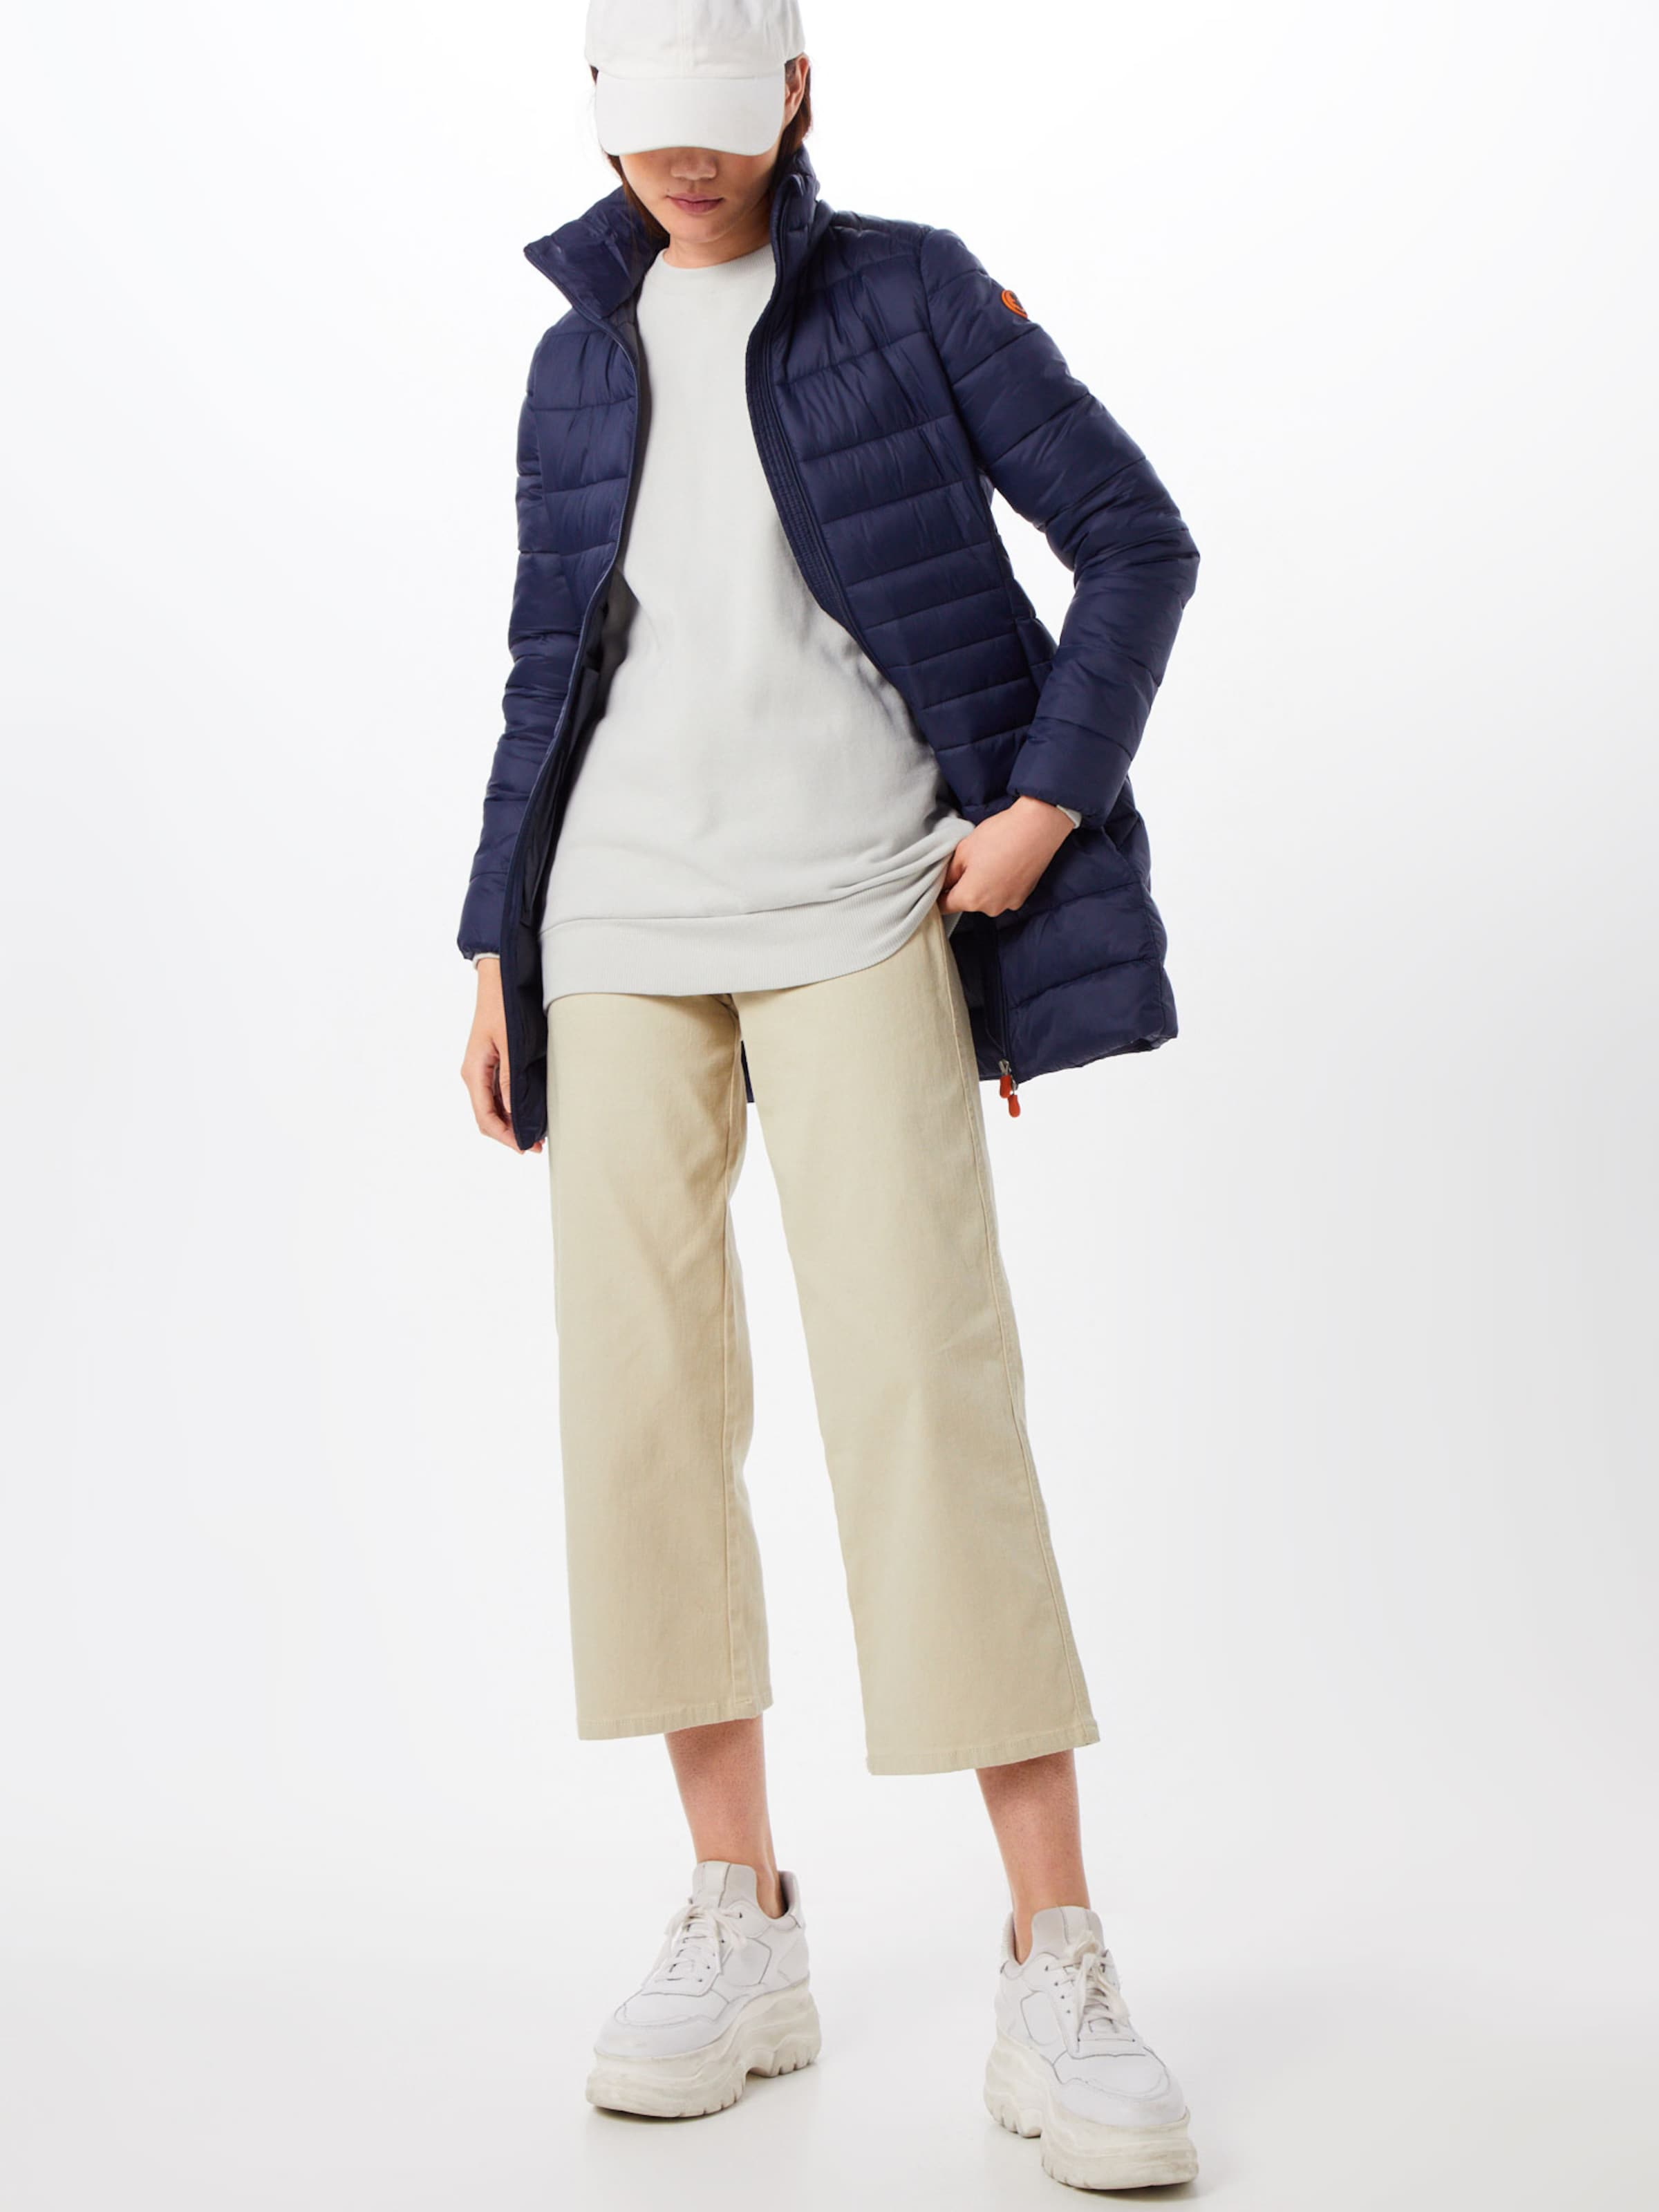 'cappotto Duck The D'hiver En Manteau Bleu Cappuccio' Save Marine vnN08mw